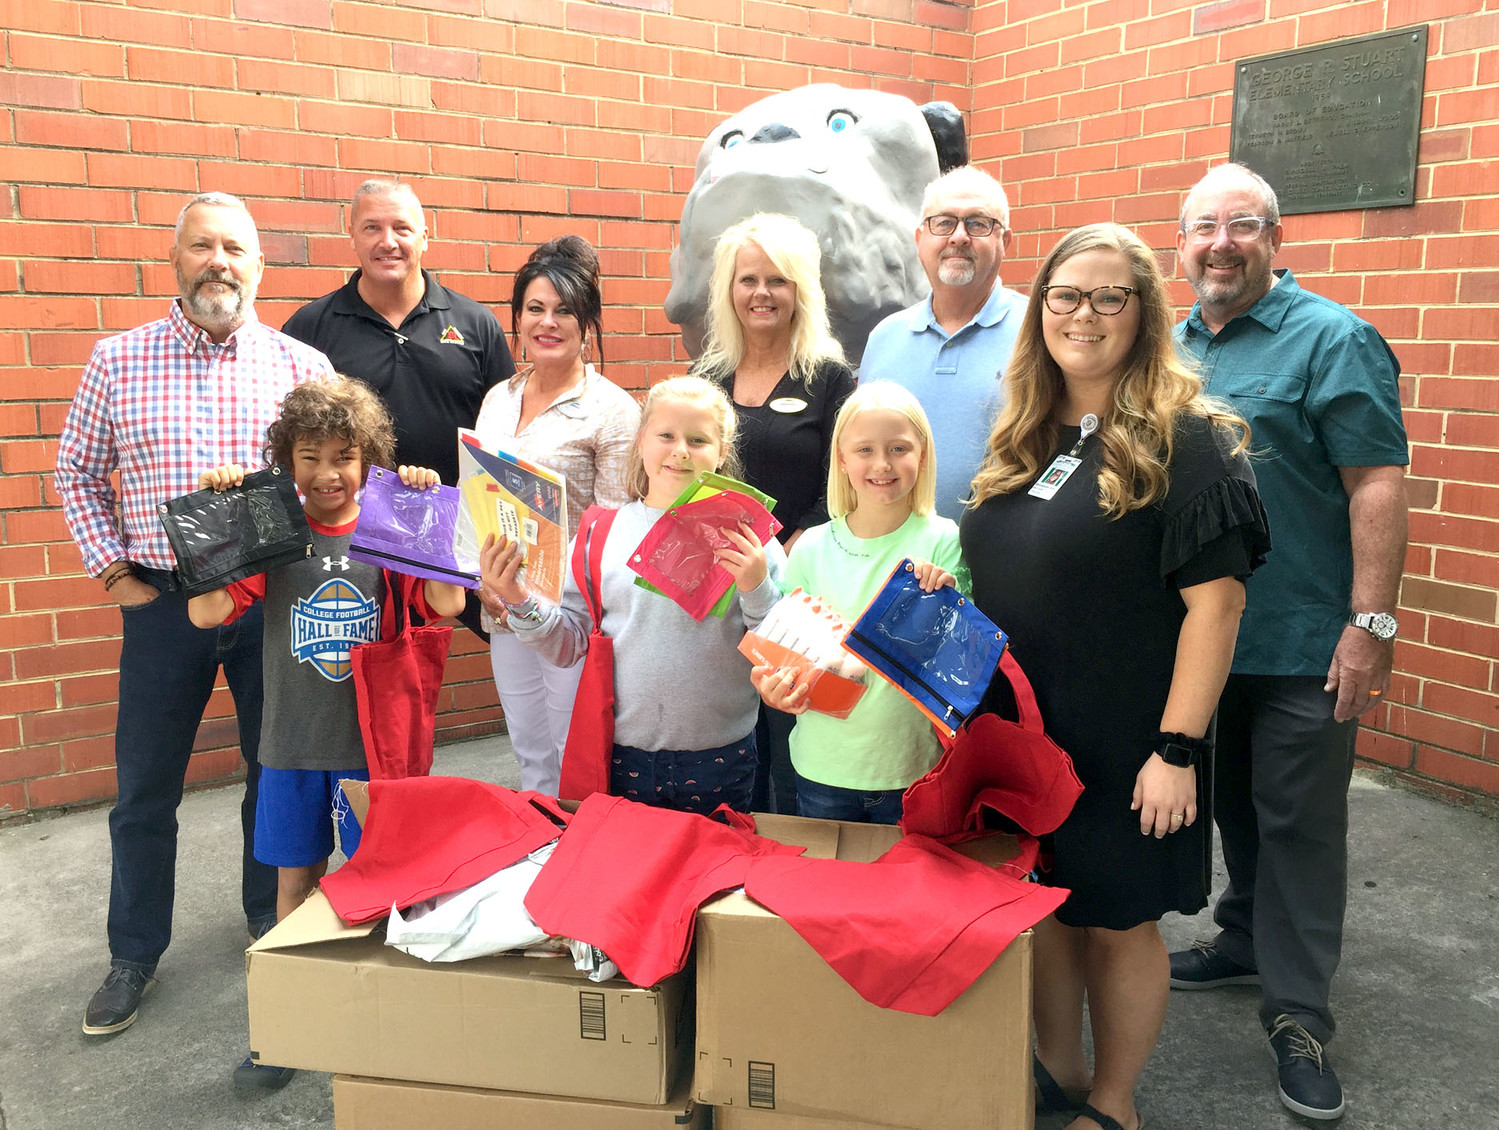 STUART ELEMENTARY recently received a generous donation from Bender Realty. Representatives brought school supplies for incoming kindergarten students.